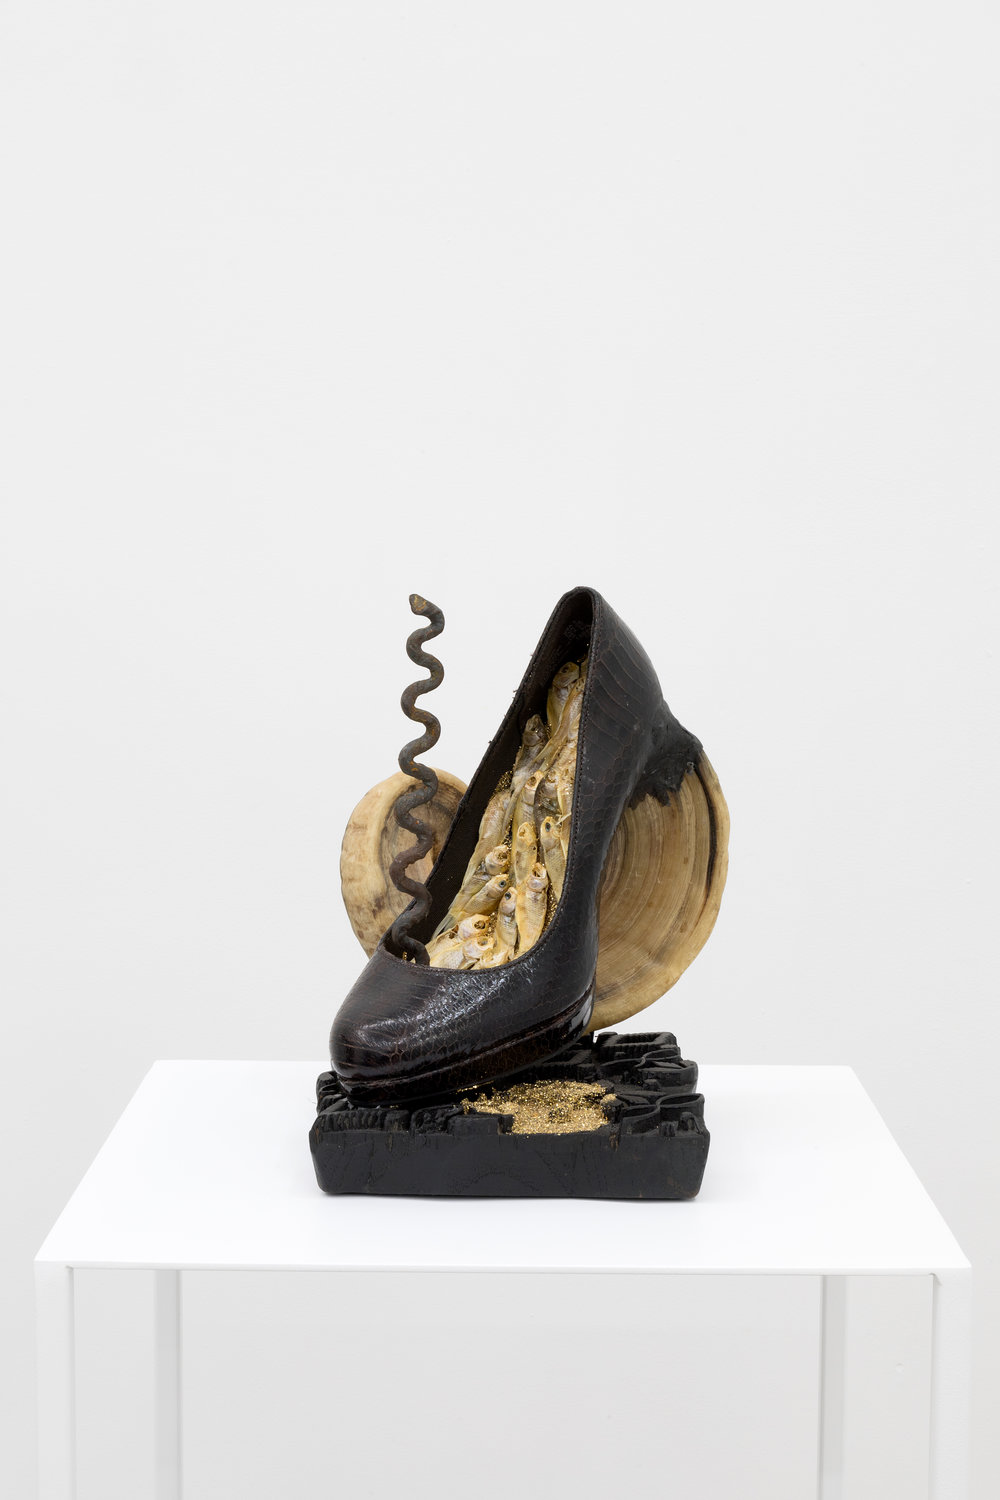 Genesis BREYER P-ORRIDGE,  Shoe Horn #9 , 2016, Dominatrix shoe, ram horn, vodun iron python, dried feeder fish, glitter, Nepalese printing block, 9.5 x 9.6 x 6.5 in